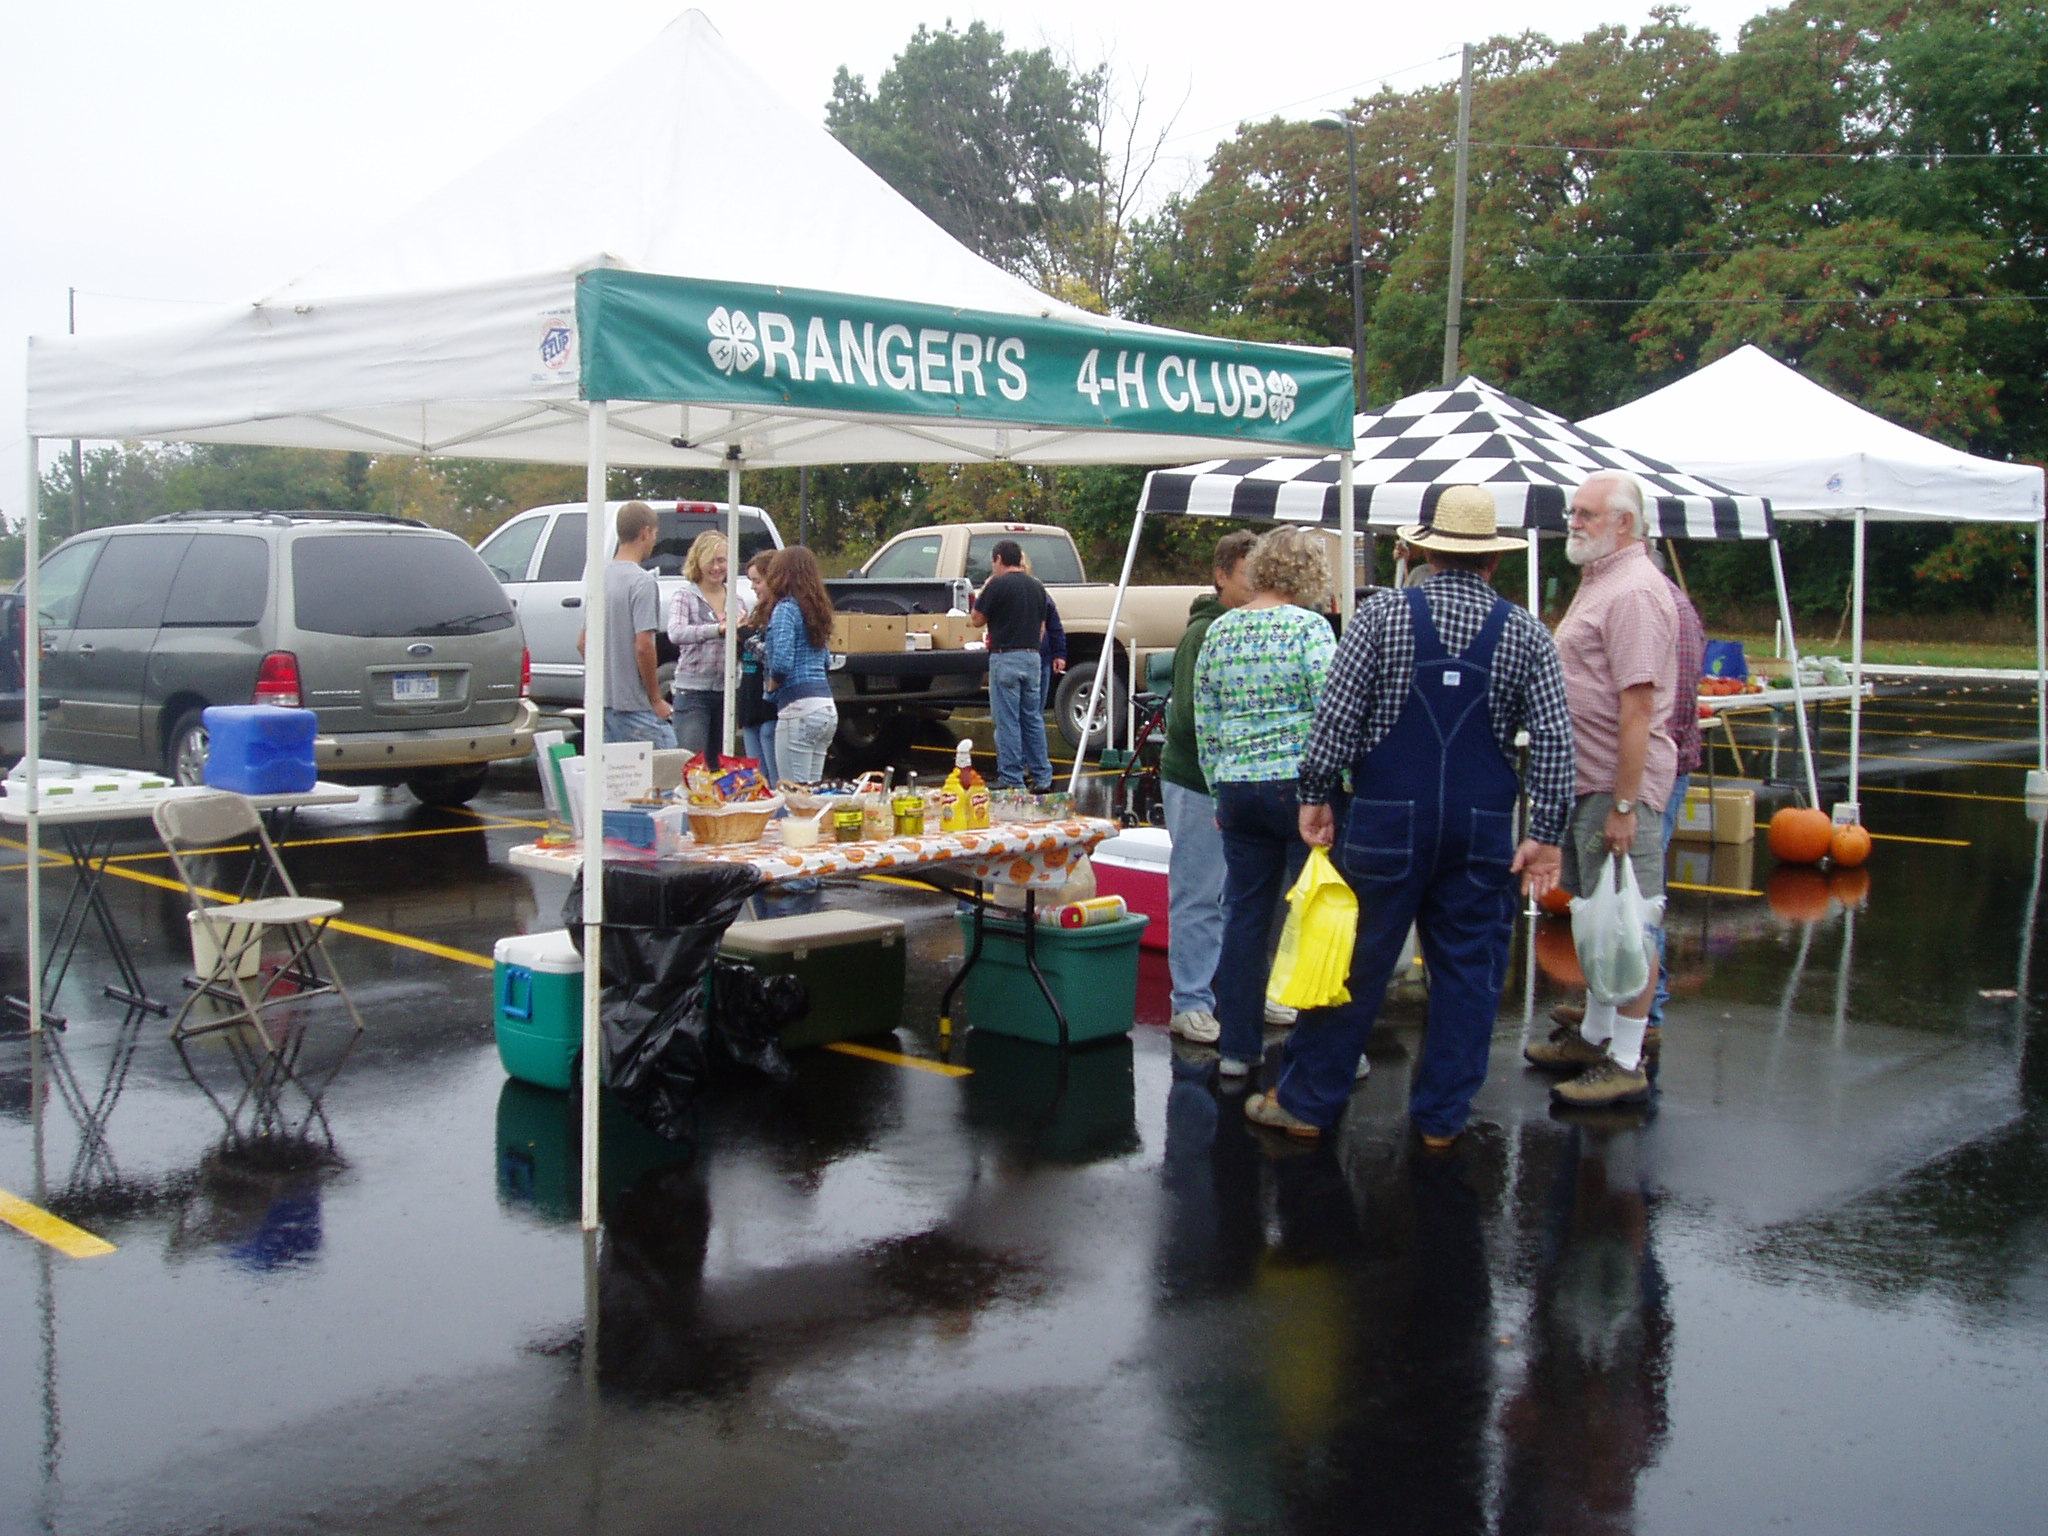 The Ranger's 4-H club offers hot food and cold drinks at the Hartland Farmer's Market.